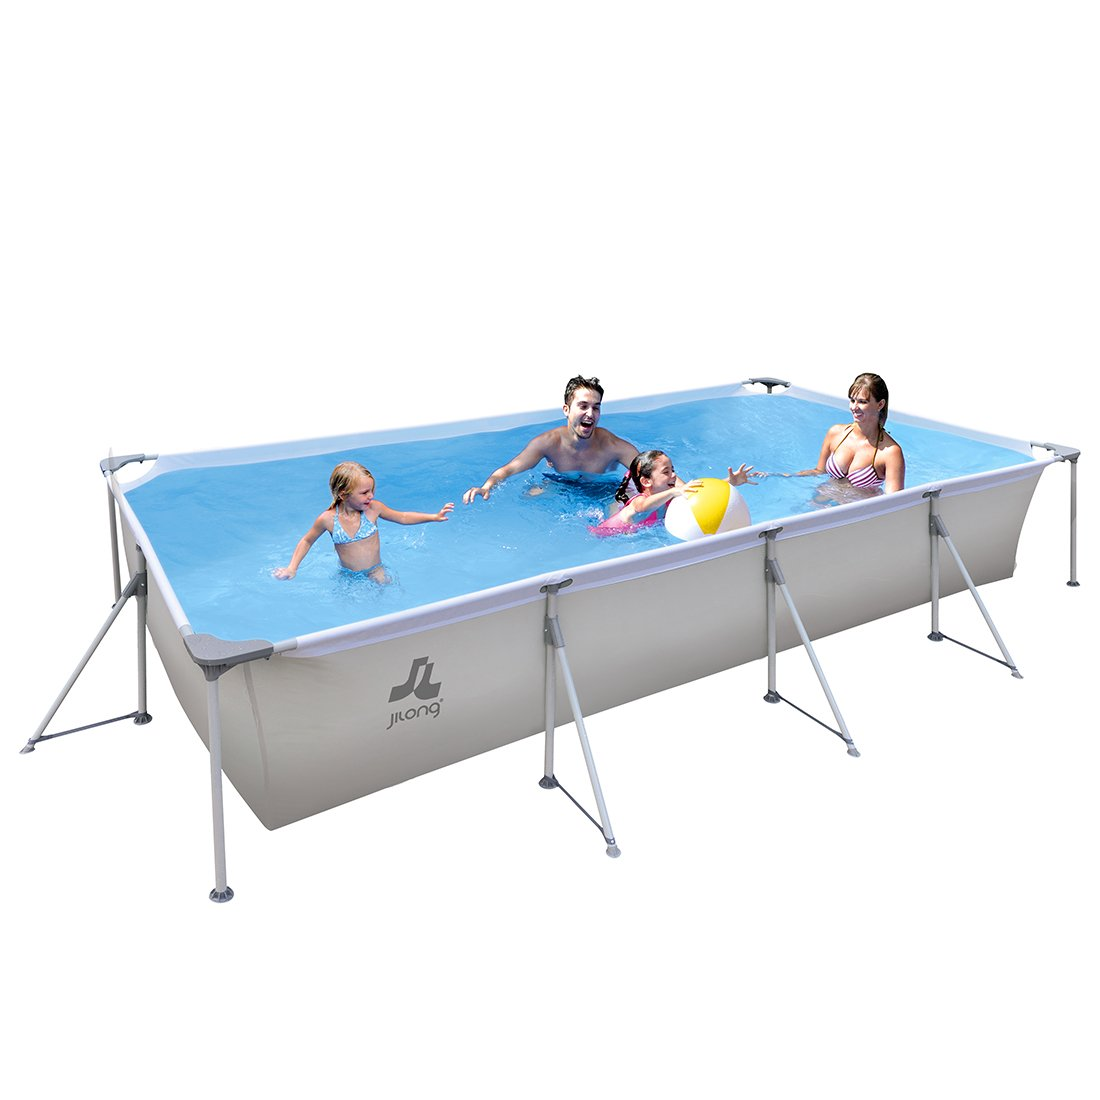 Jilong Swimming Pool Passaat Grey - Steel frame pool 394x207x80 cm, family baths for garden and terrace.